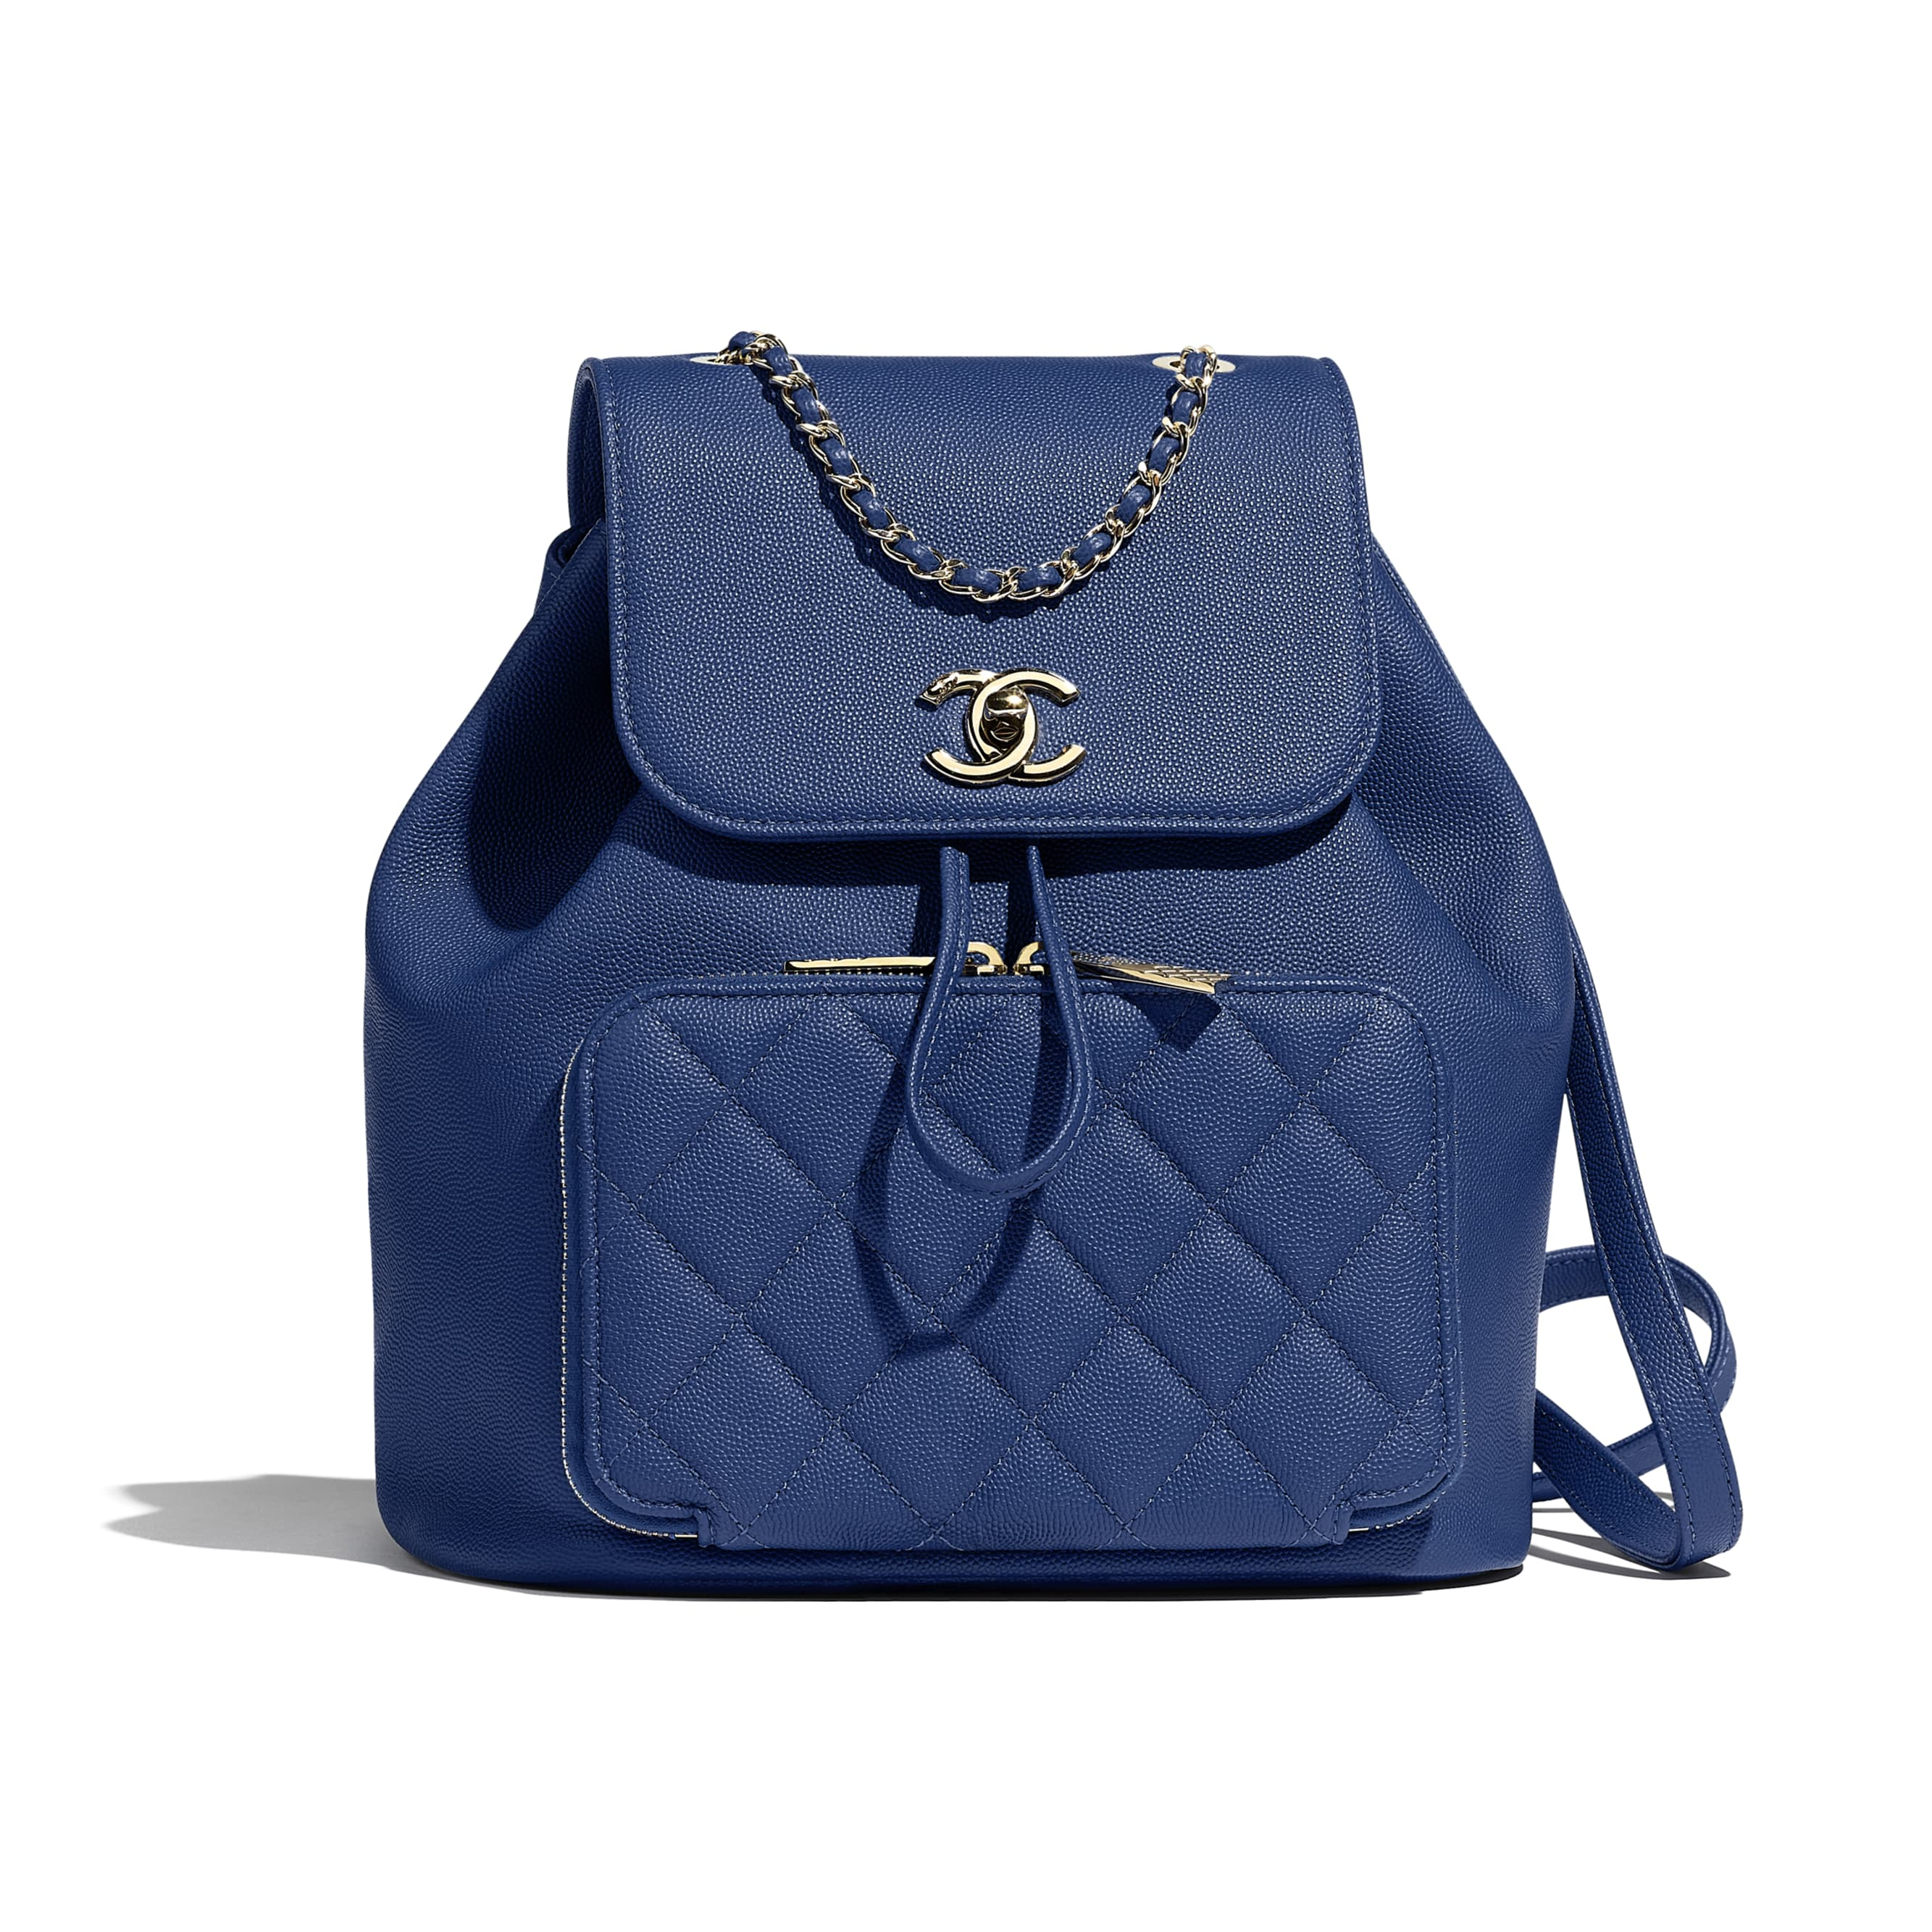 Backpack - Dark Blue - Grained Calfskin & Gold-Tone Metal - Default view - see standard sized version